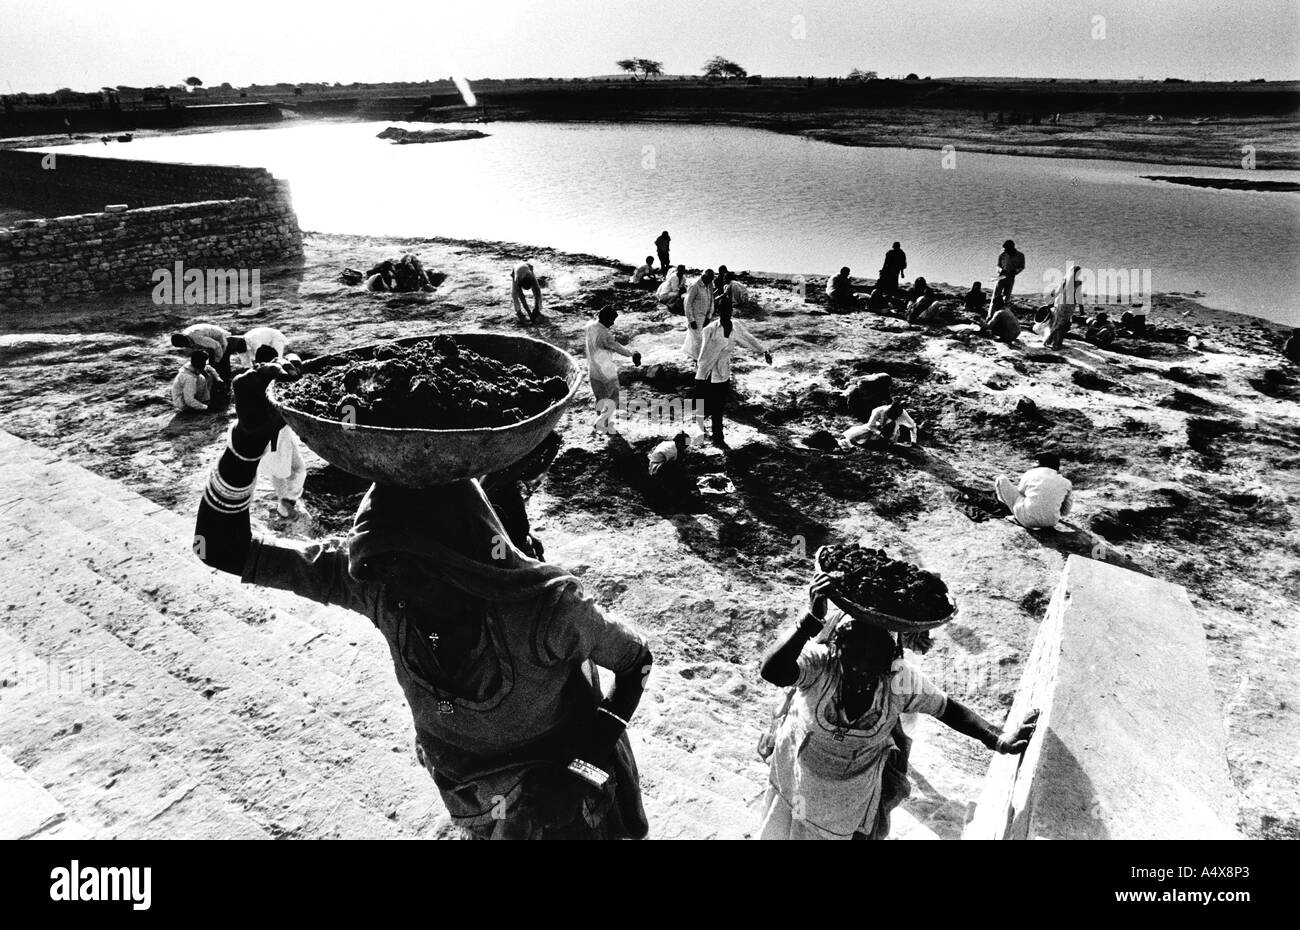 Construction workers digging near a pond in Rajasthan India - Stock Image